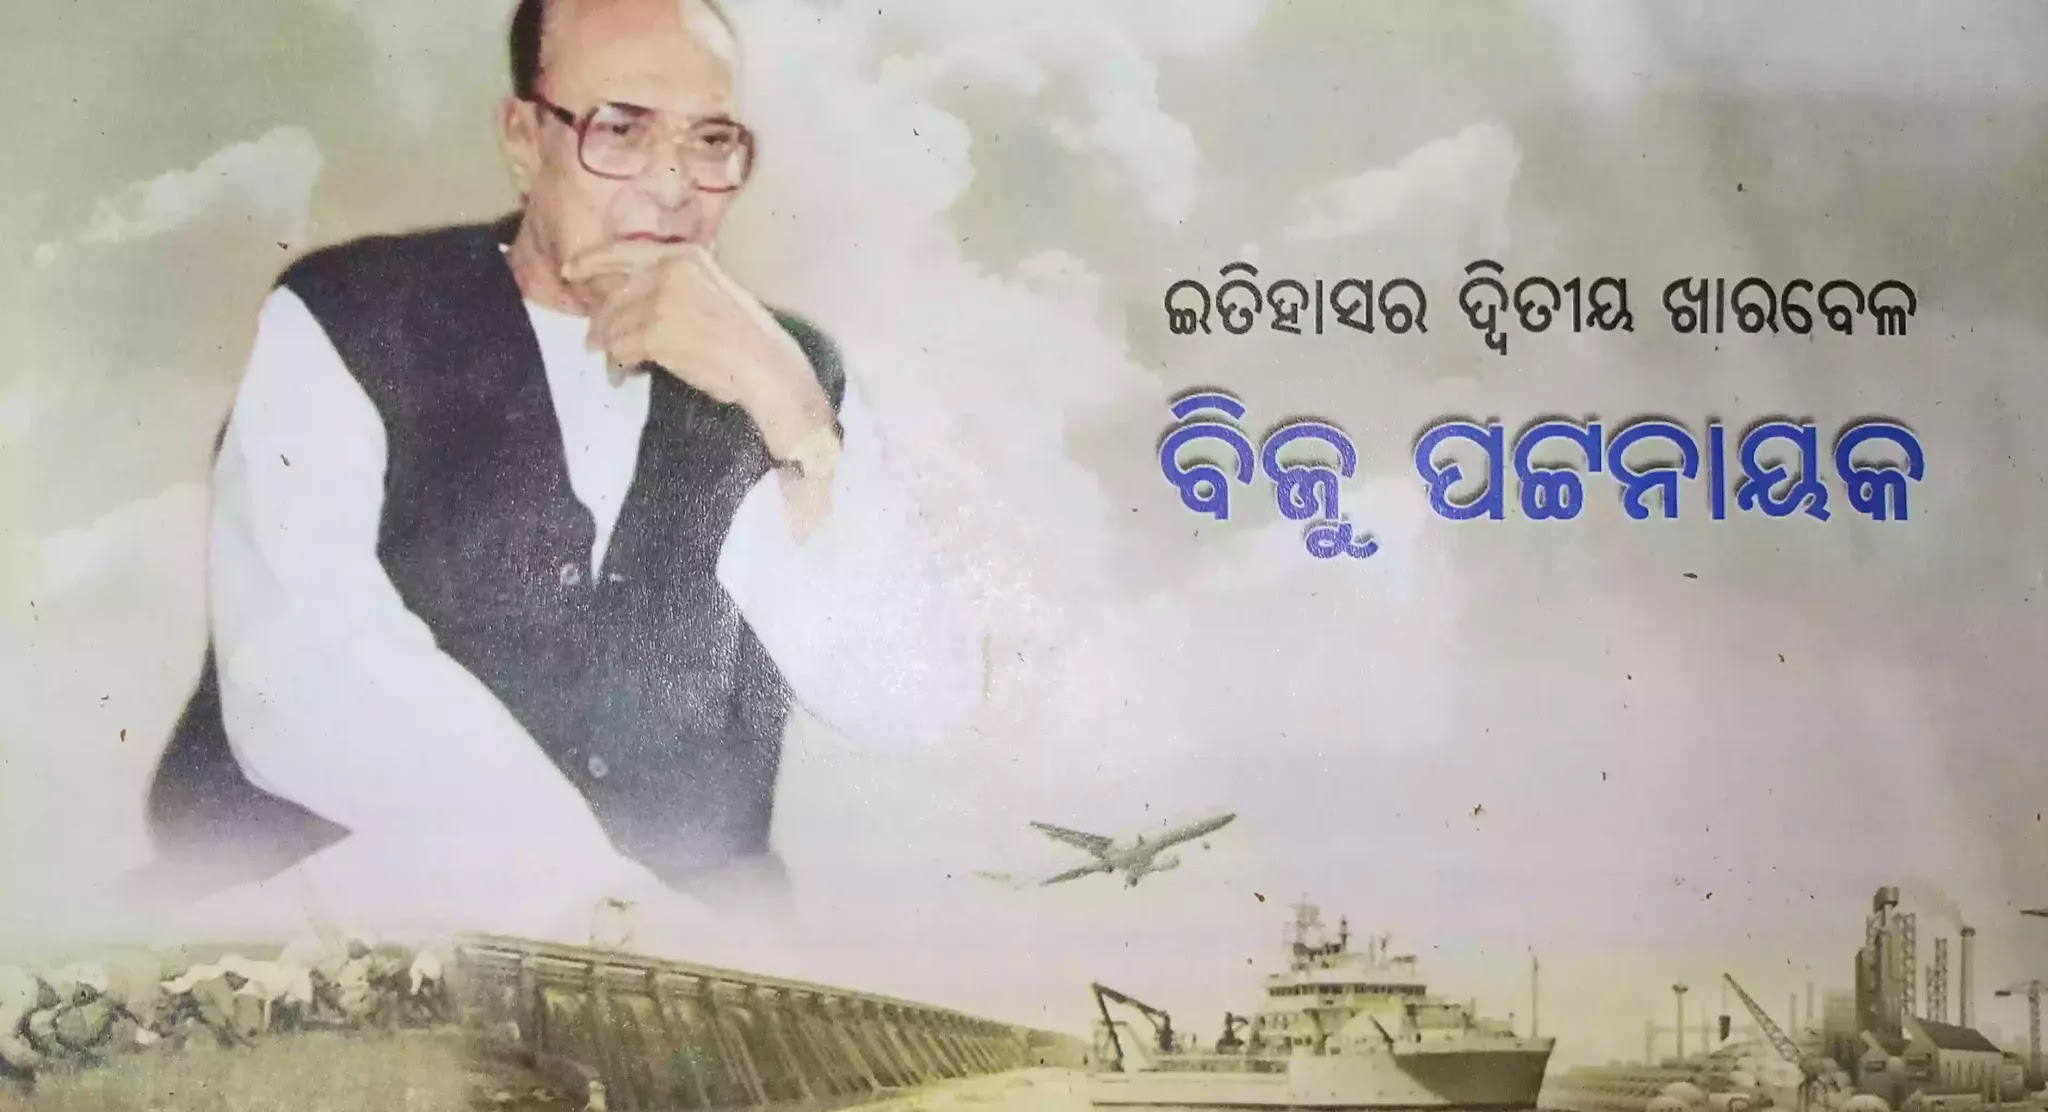 The second time in history Biju Patnaik